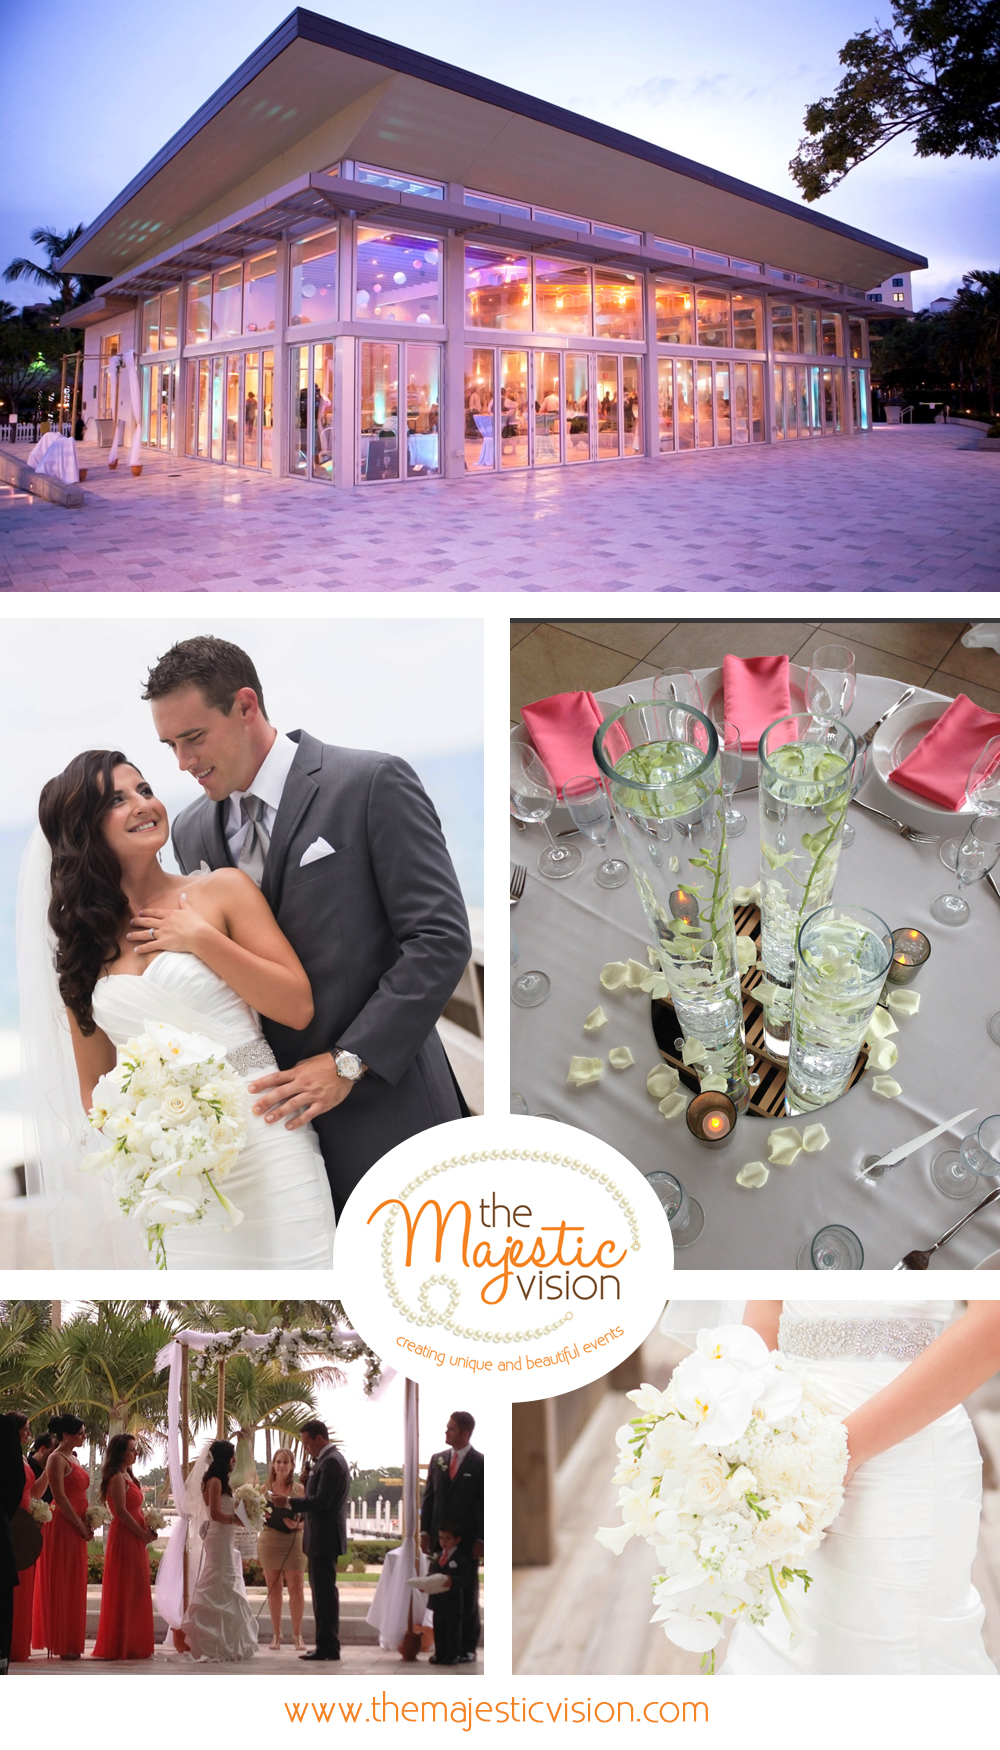 Classic Silver, Coral and Blue Wedding | The Majestic Vision Wedding Planning | Palm Beach Lake Pavilion in Palm Beach, FL | www.themajesticvision.com | Emmanuel Gil Photography